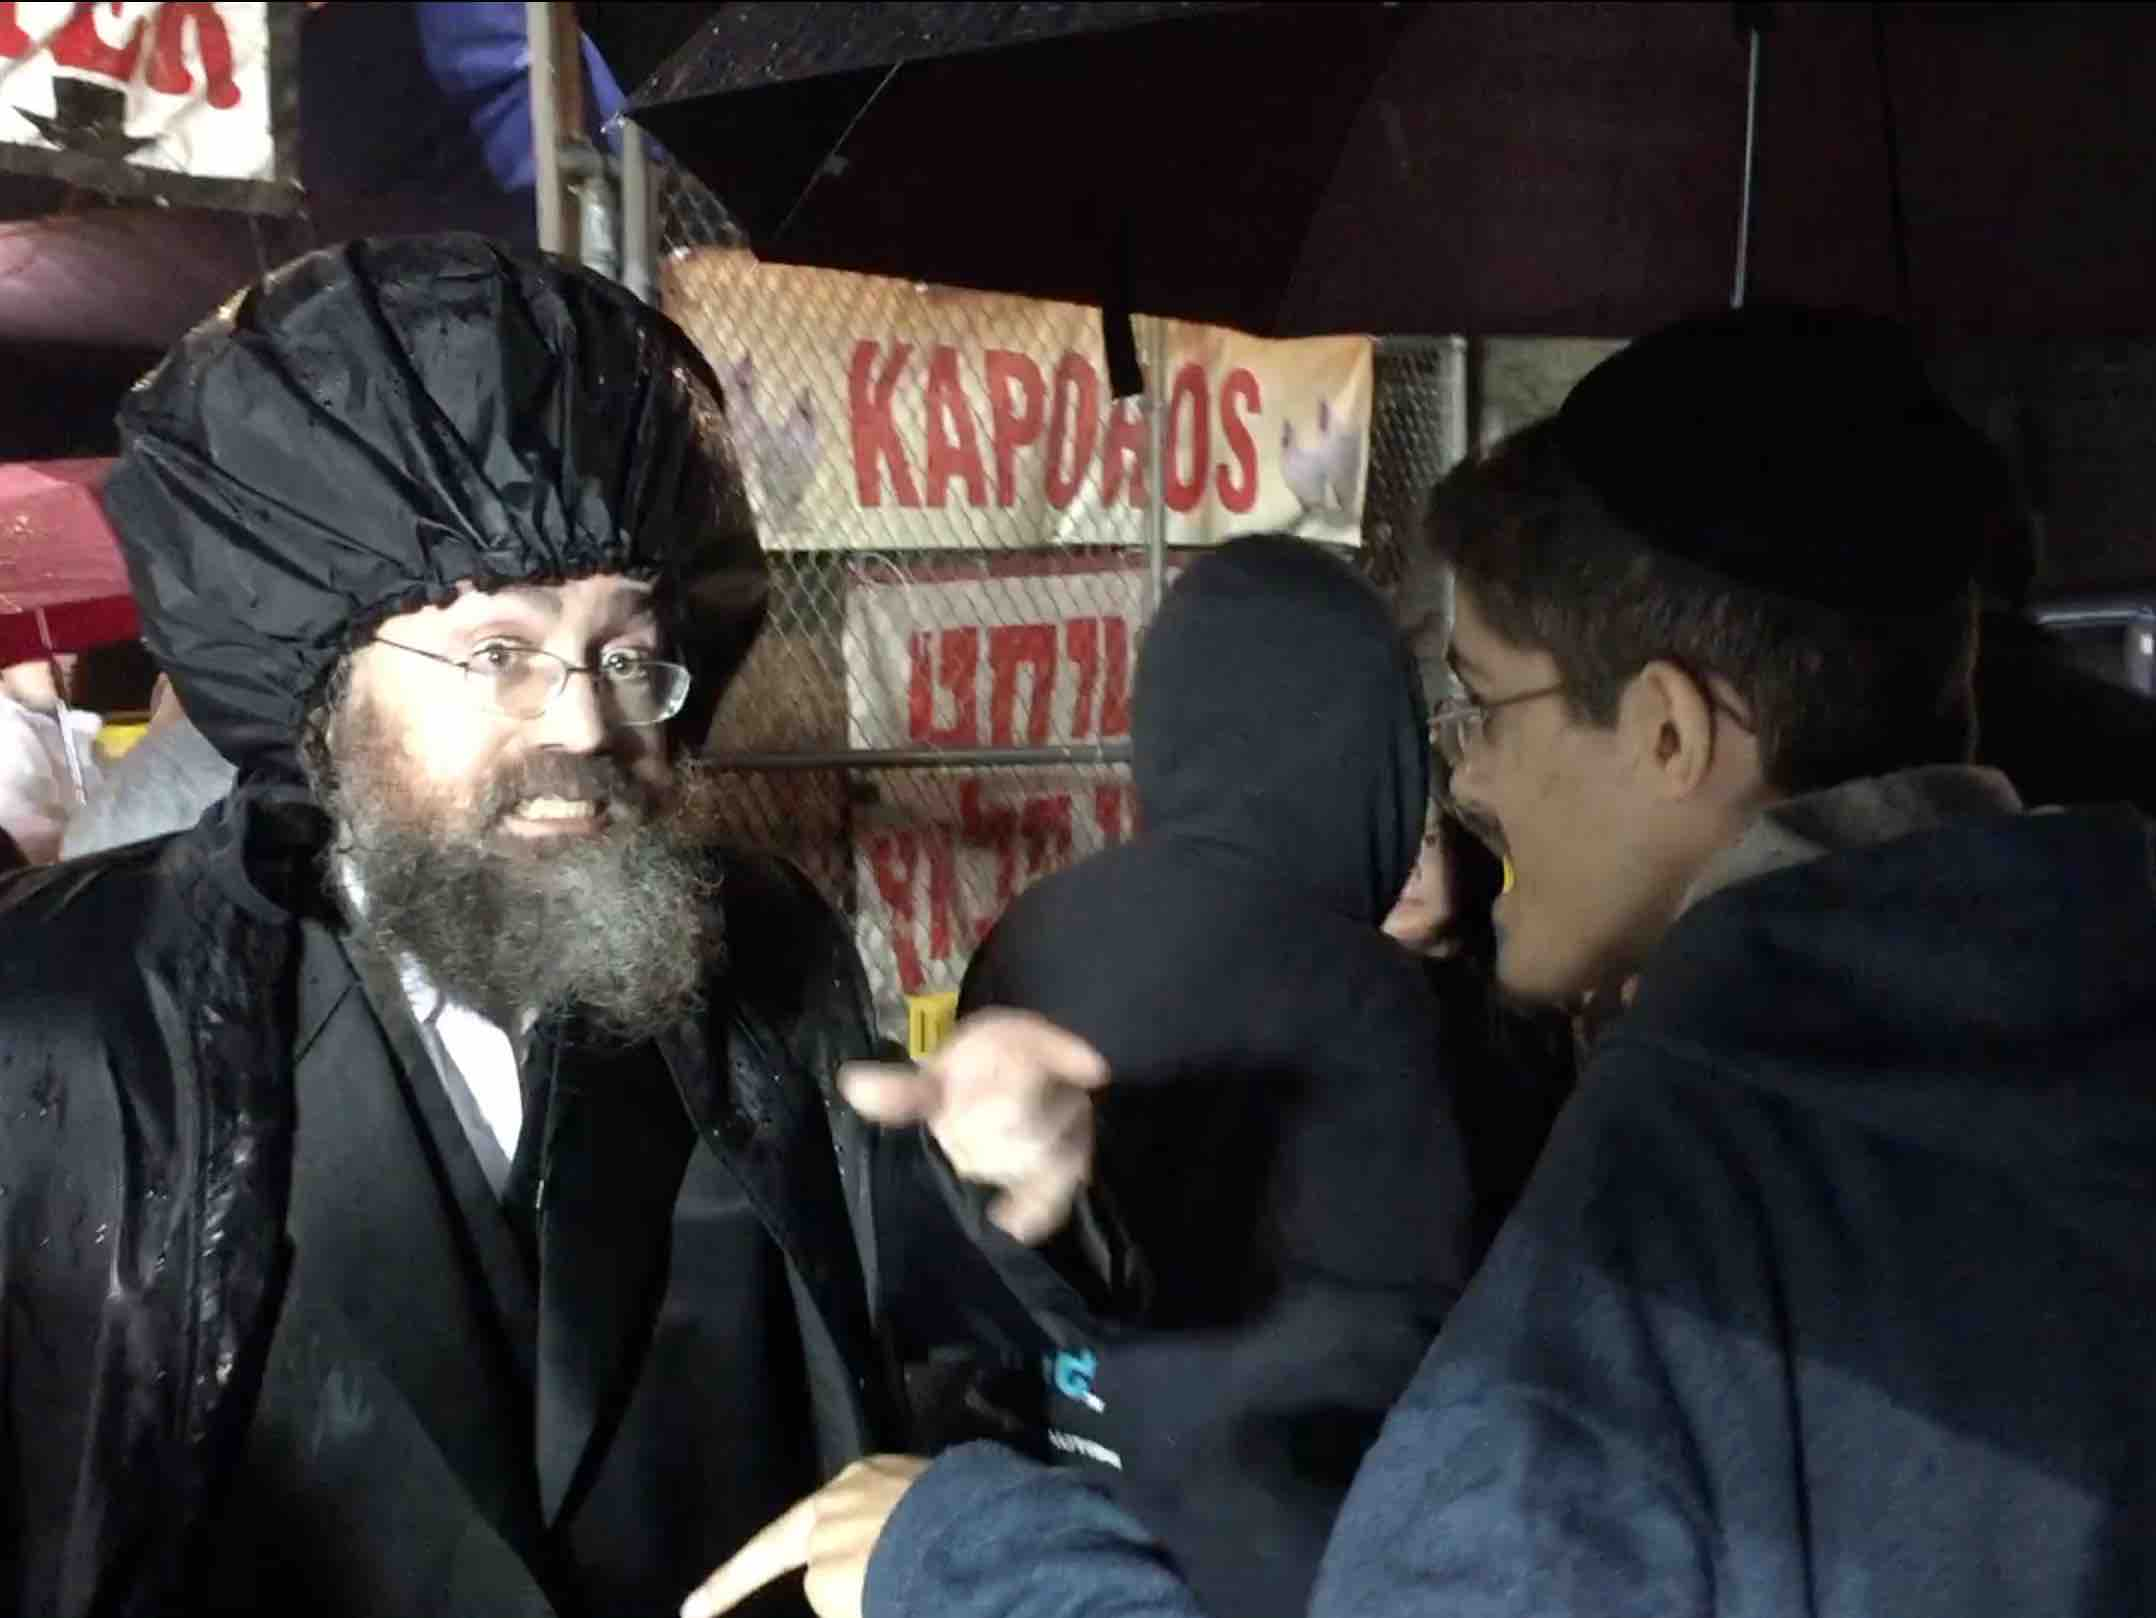 Shimon Shuchat, who was born into the Hassidic community but has since left, encourages a Kaporos practitioner to swing coins instead of live chickens.